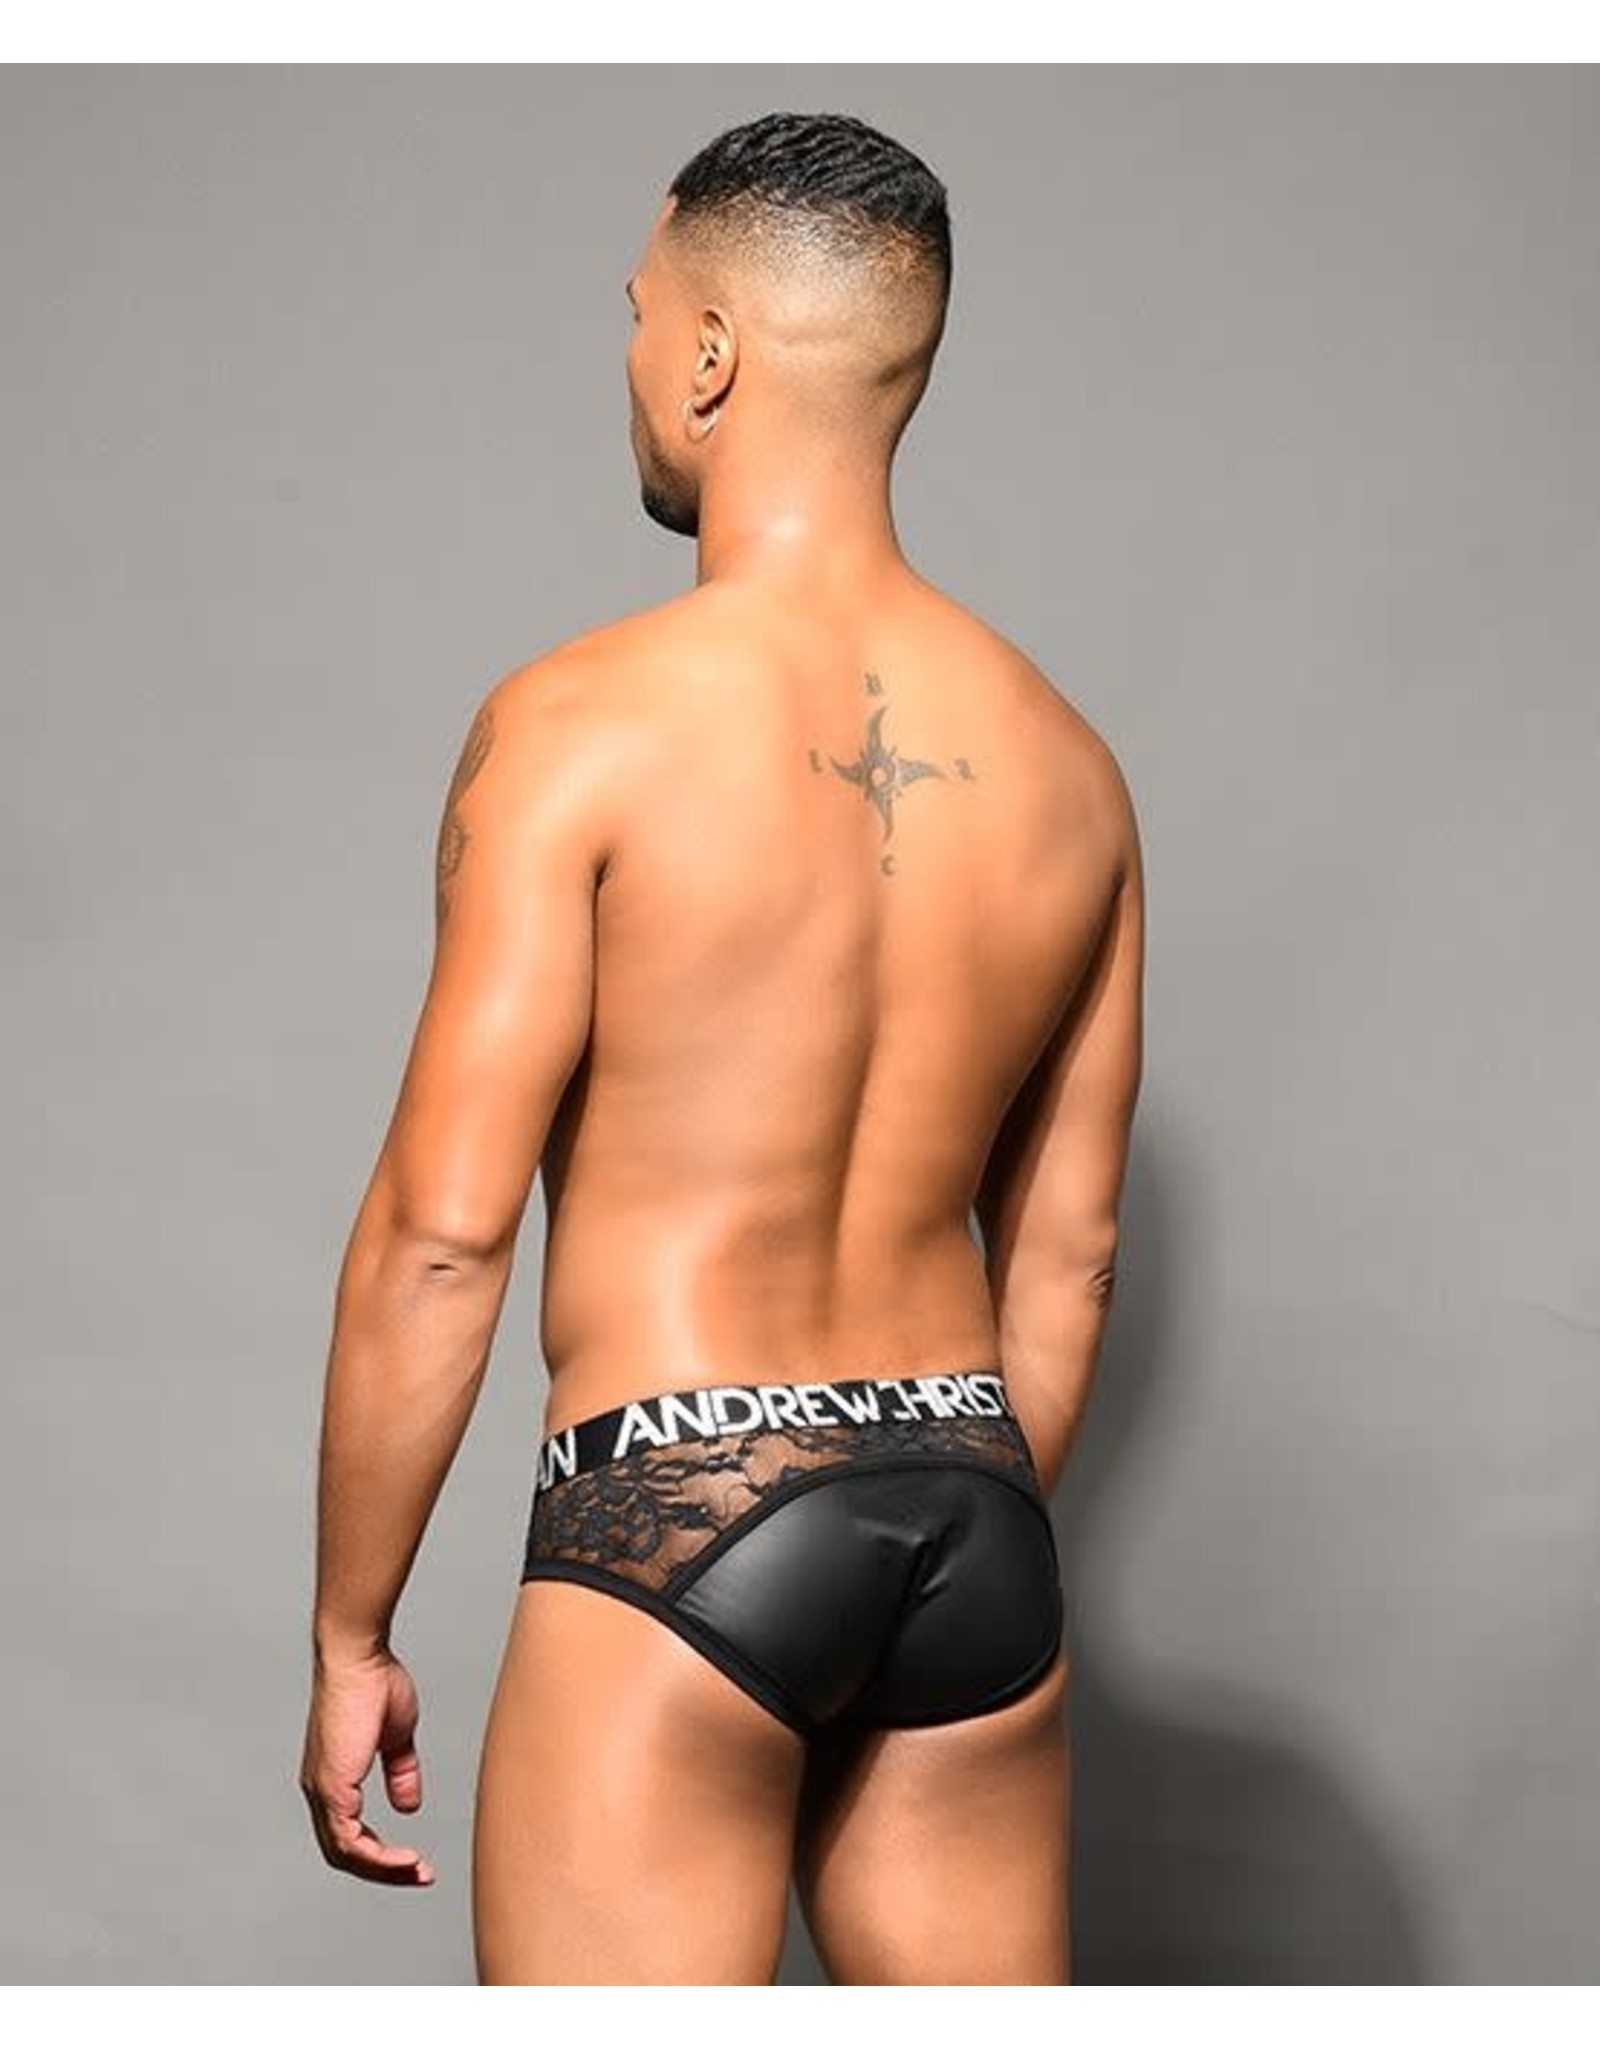 ANDREW CHRISTIAN ANDREW CHRISTIAN - NAUGHTY LACE BRIEF W/ ALMOST NAKED - SMALL